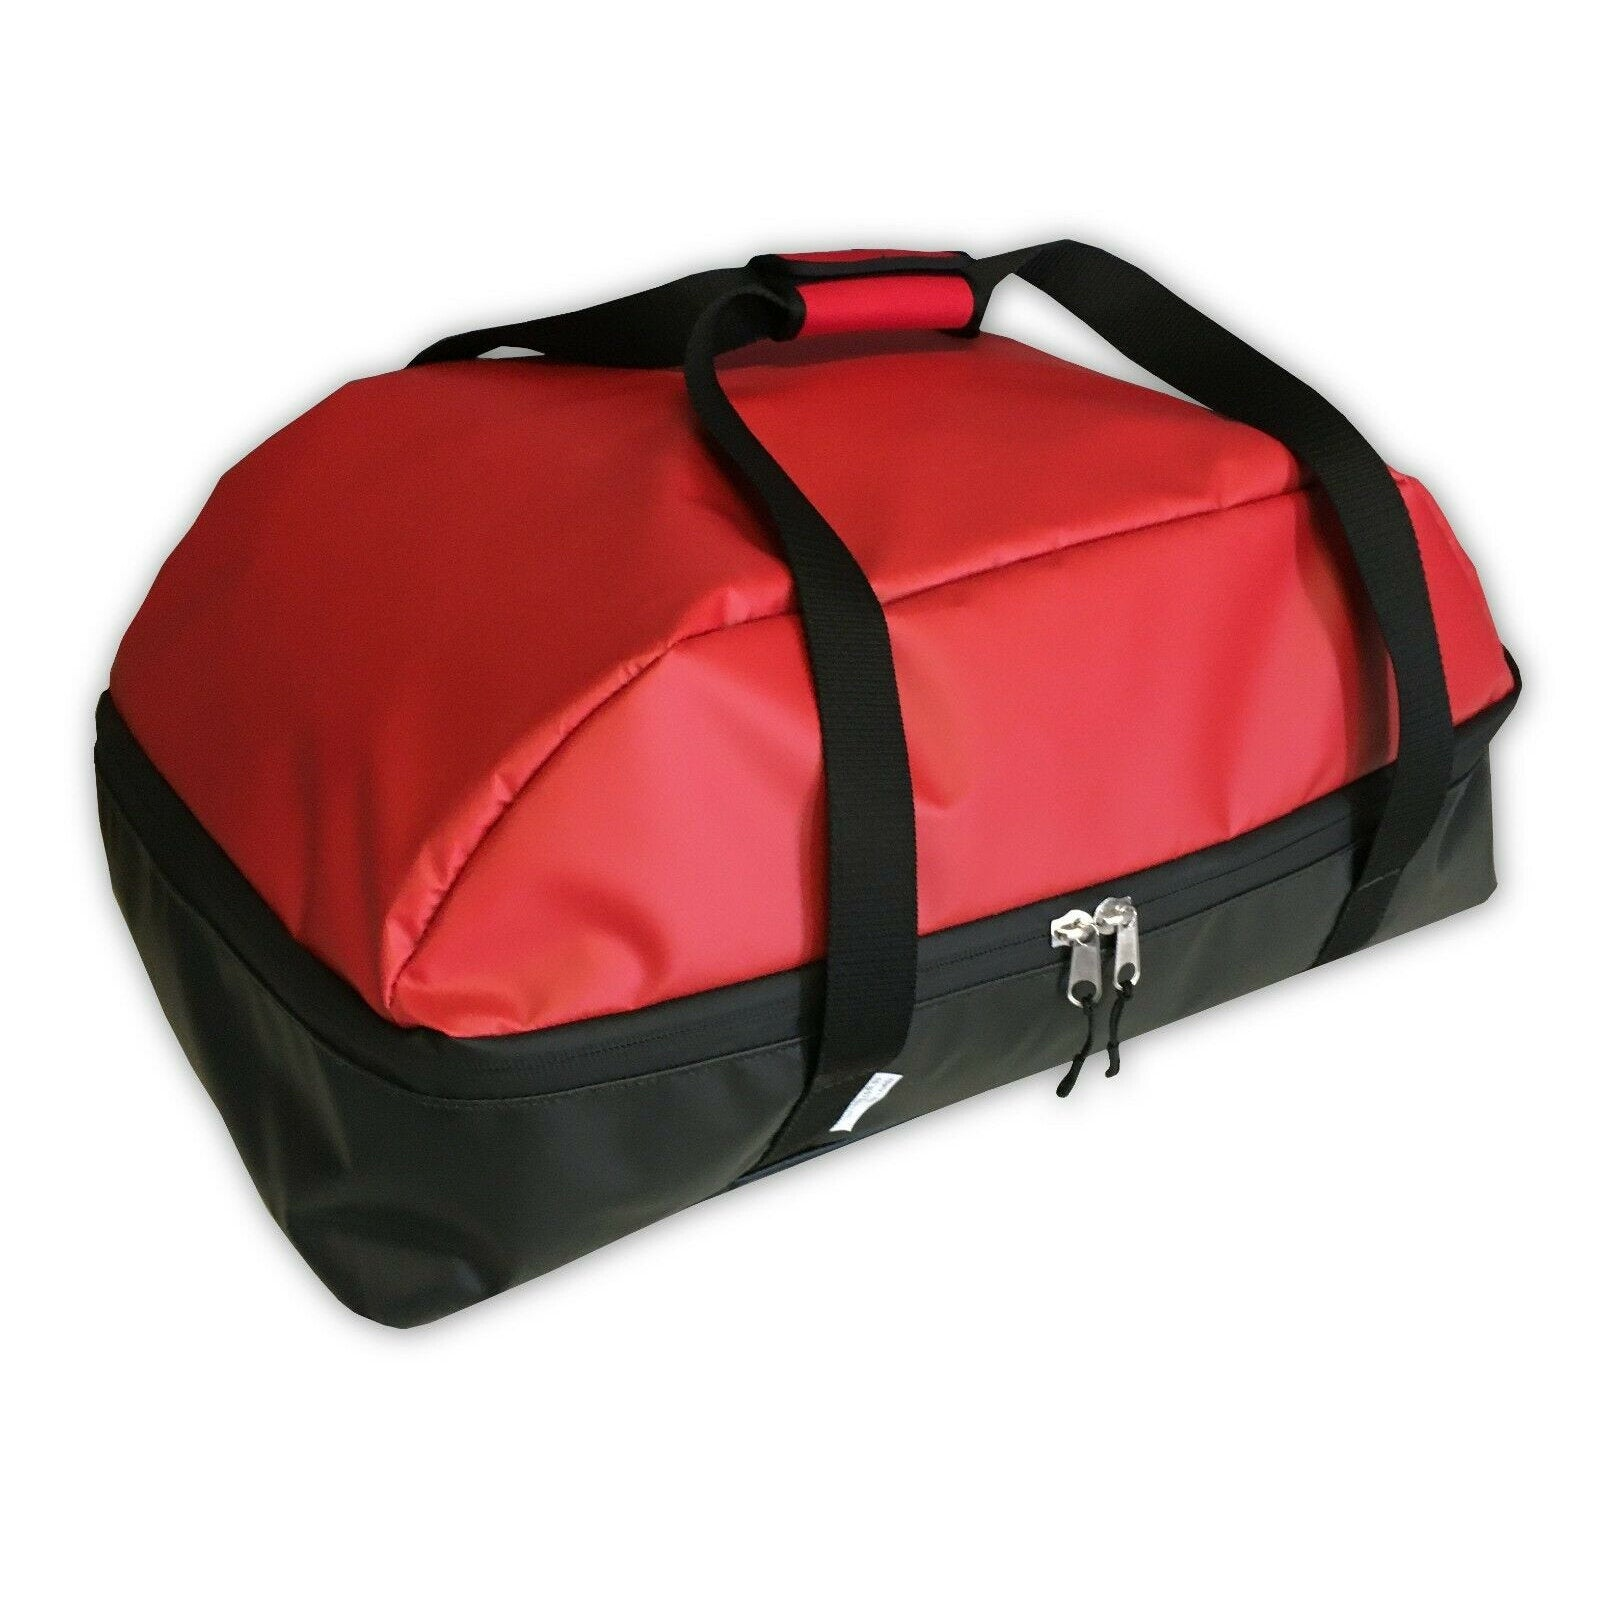 Weber Q1200 carry bag in red, waterproof fabric